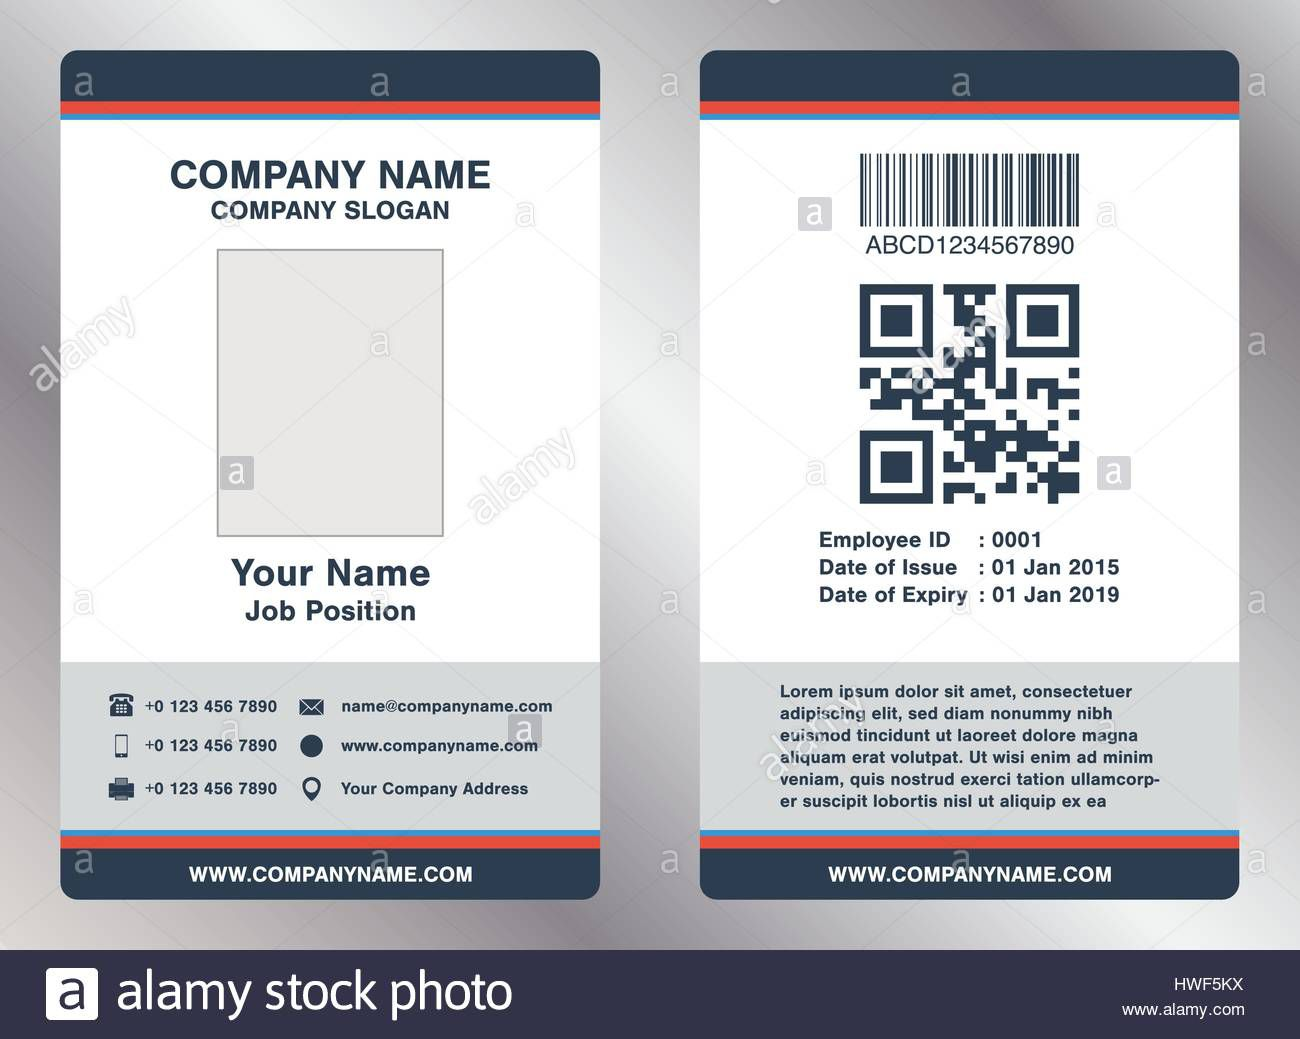 008 Astounding Employee Id Badge Template Picture  Avery Card Free Download WordFull